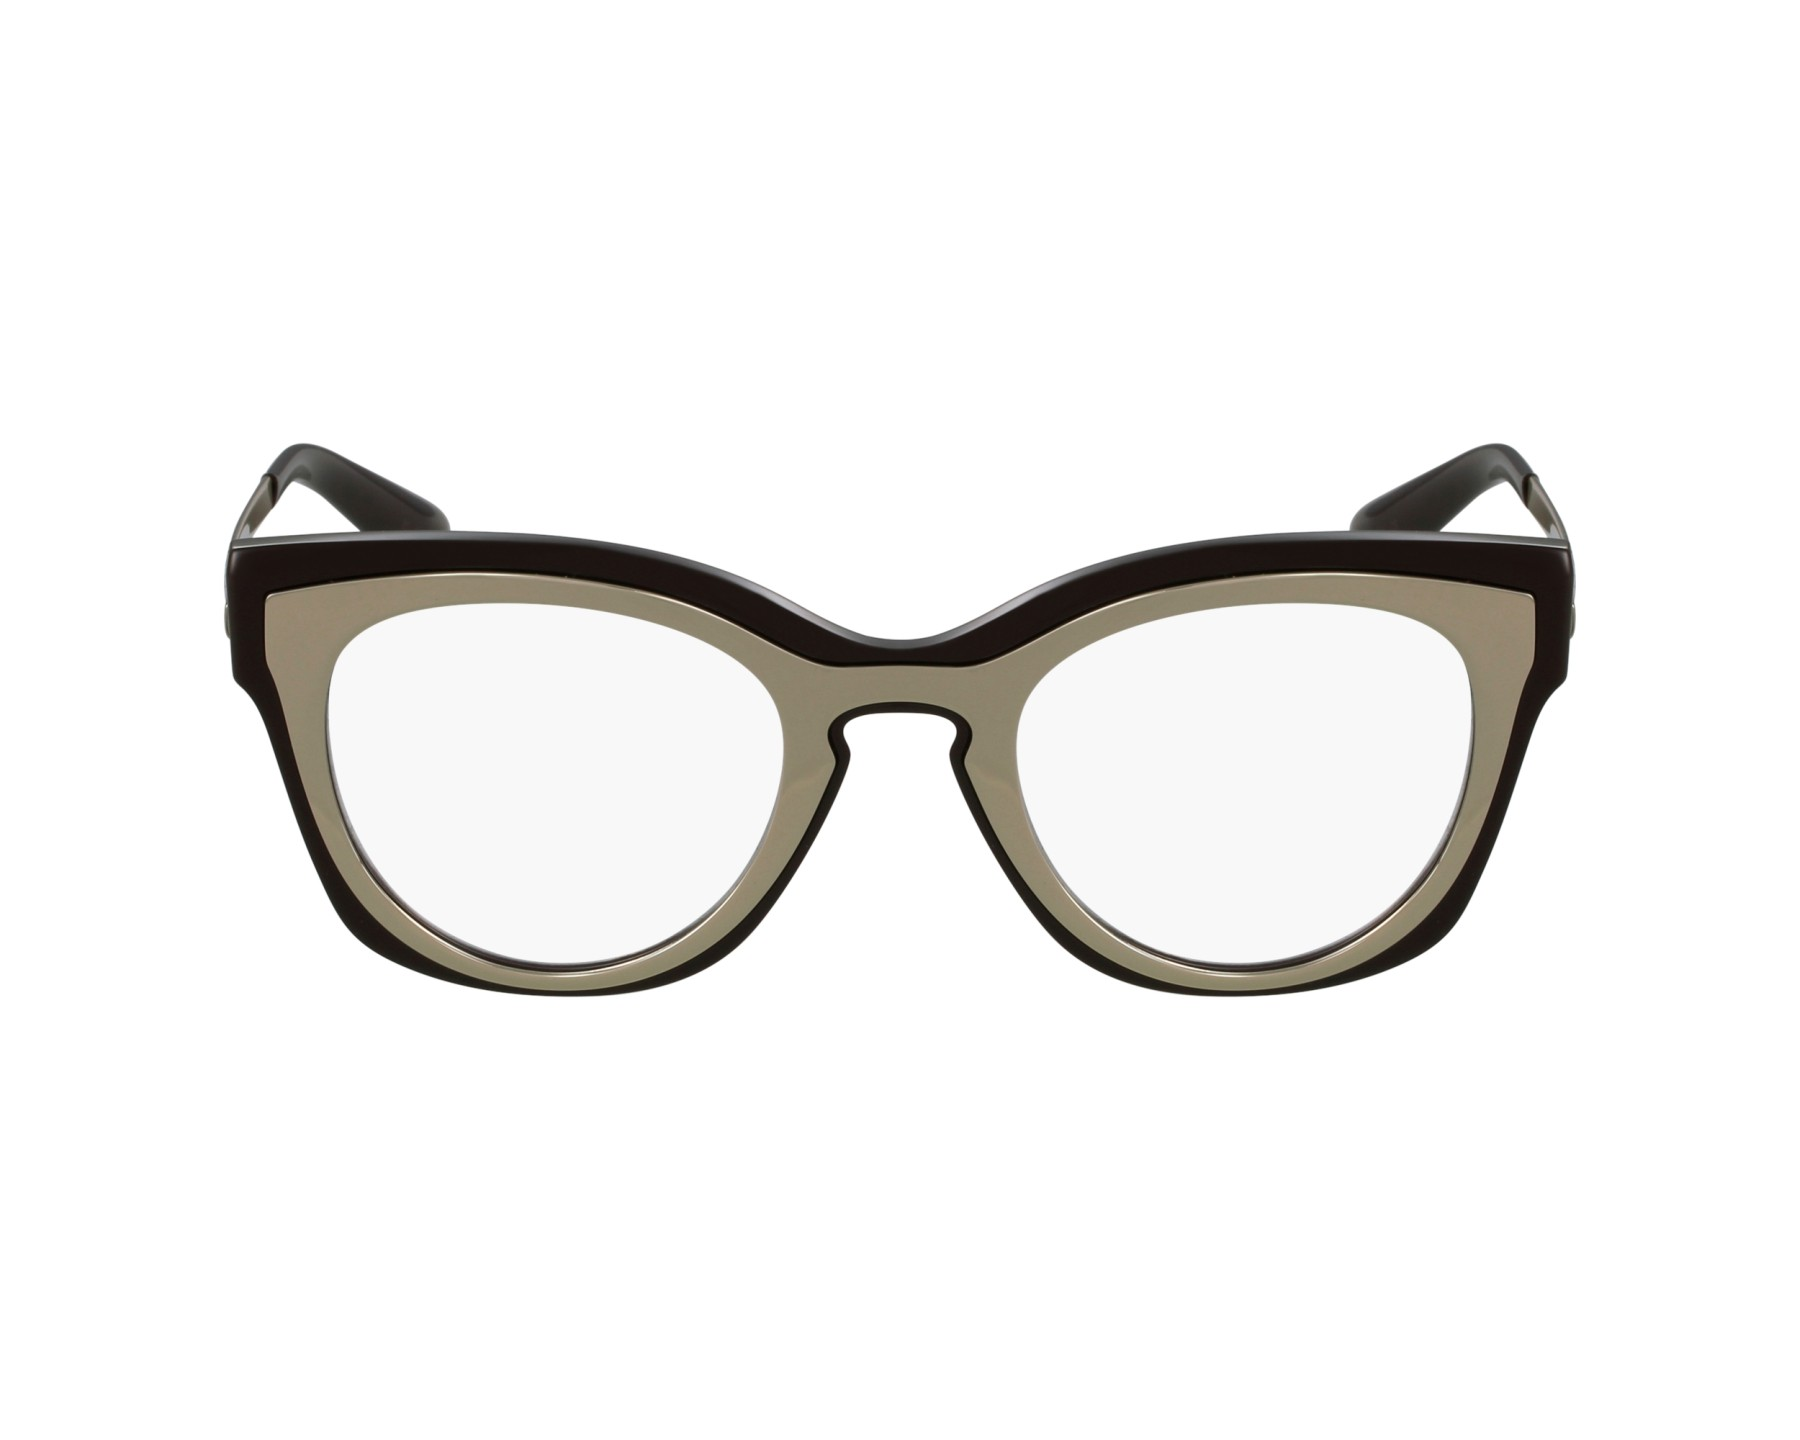 70466711f9a1d eyeglasses Dolce   Gabbana DG-5020 3042 - Brown Gold profile view